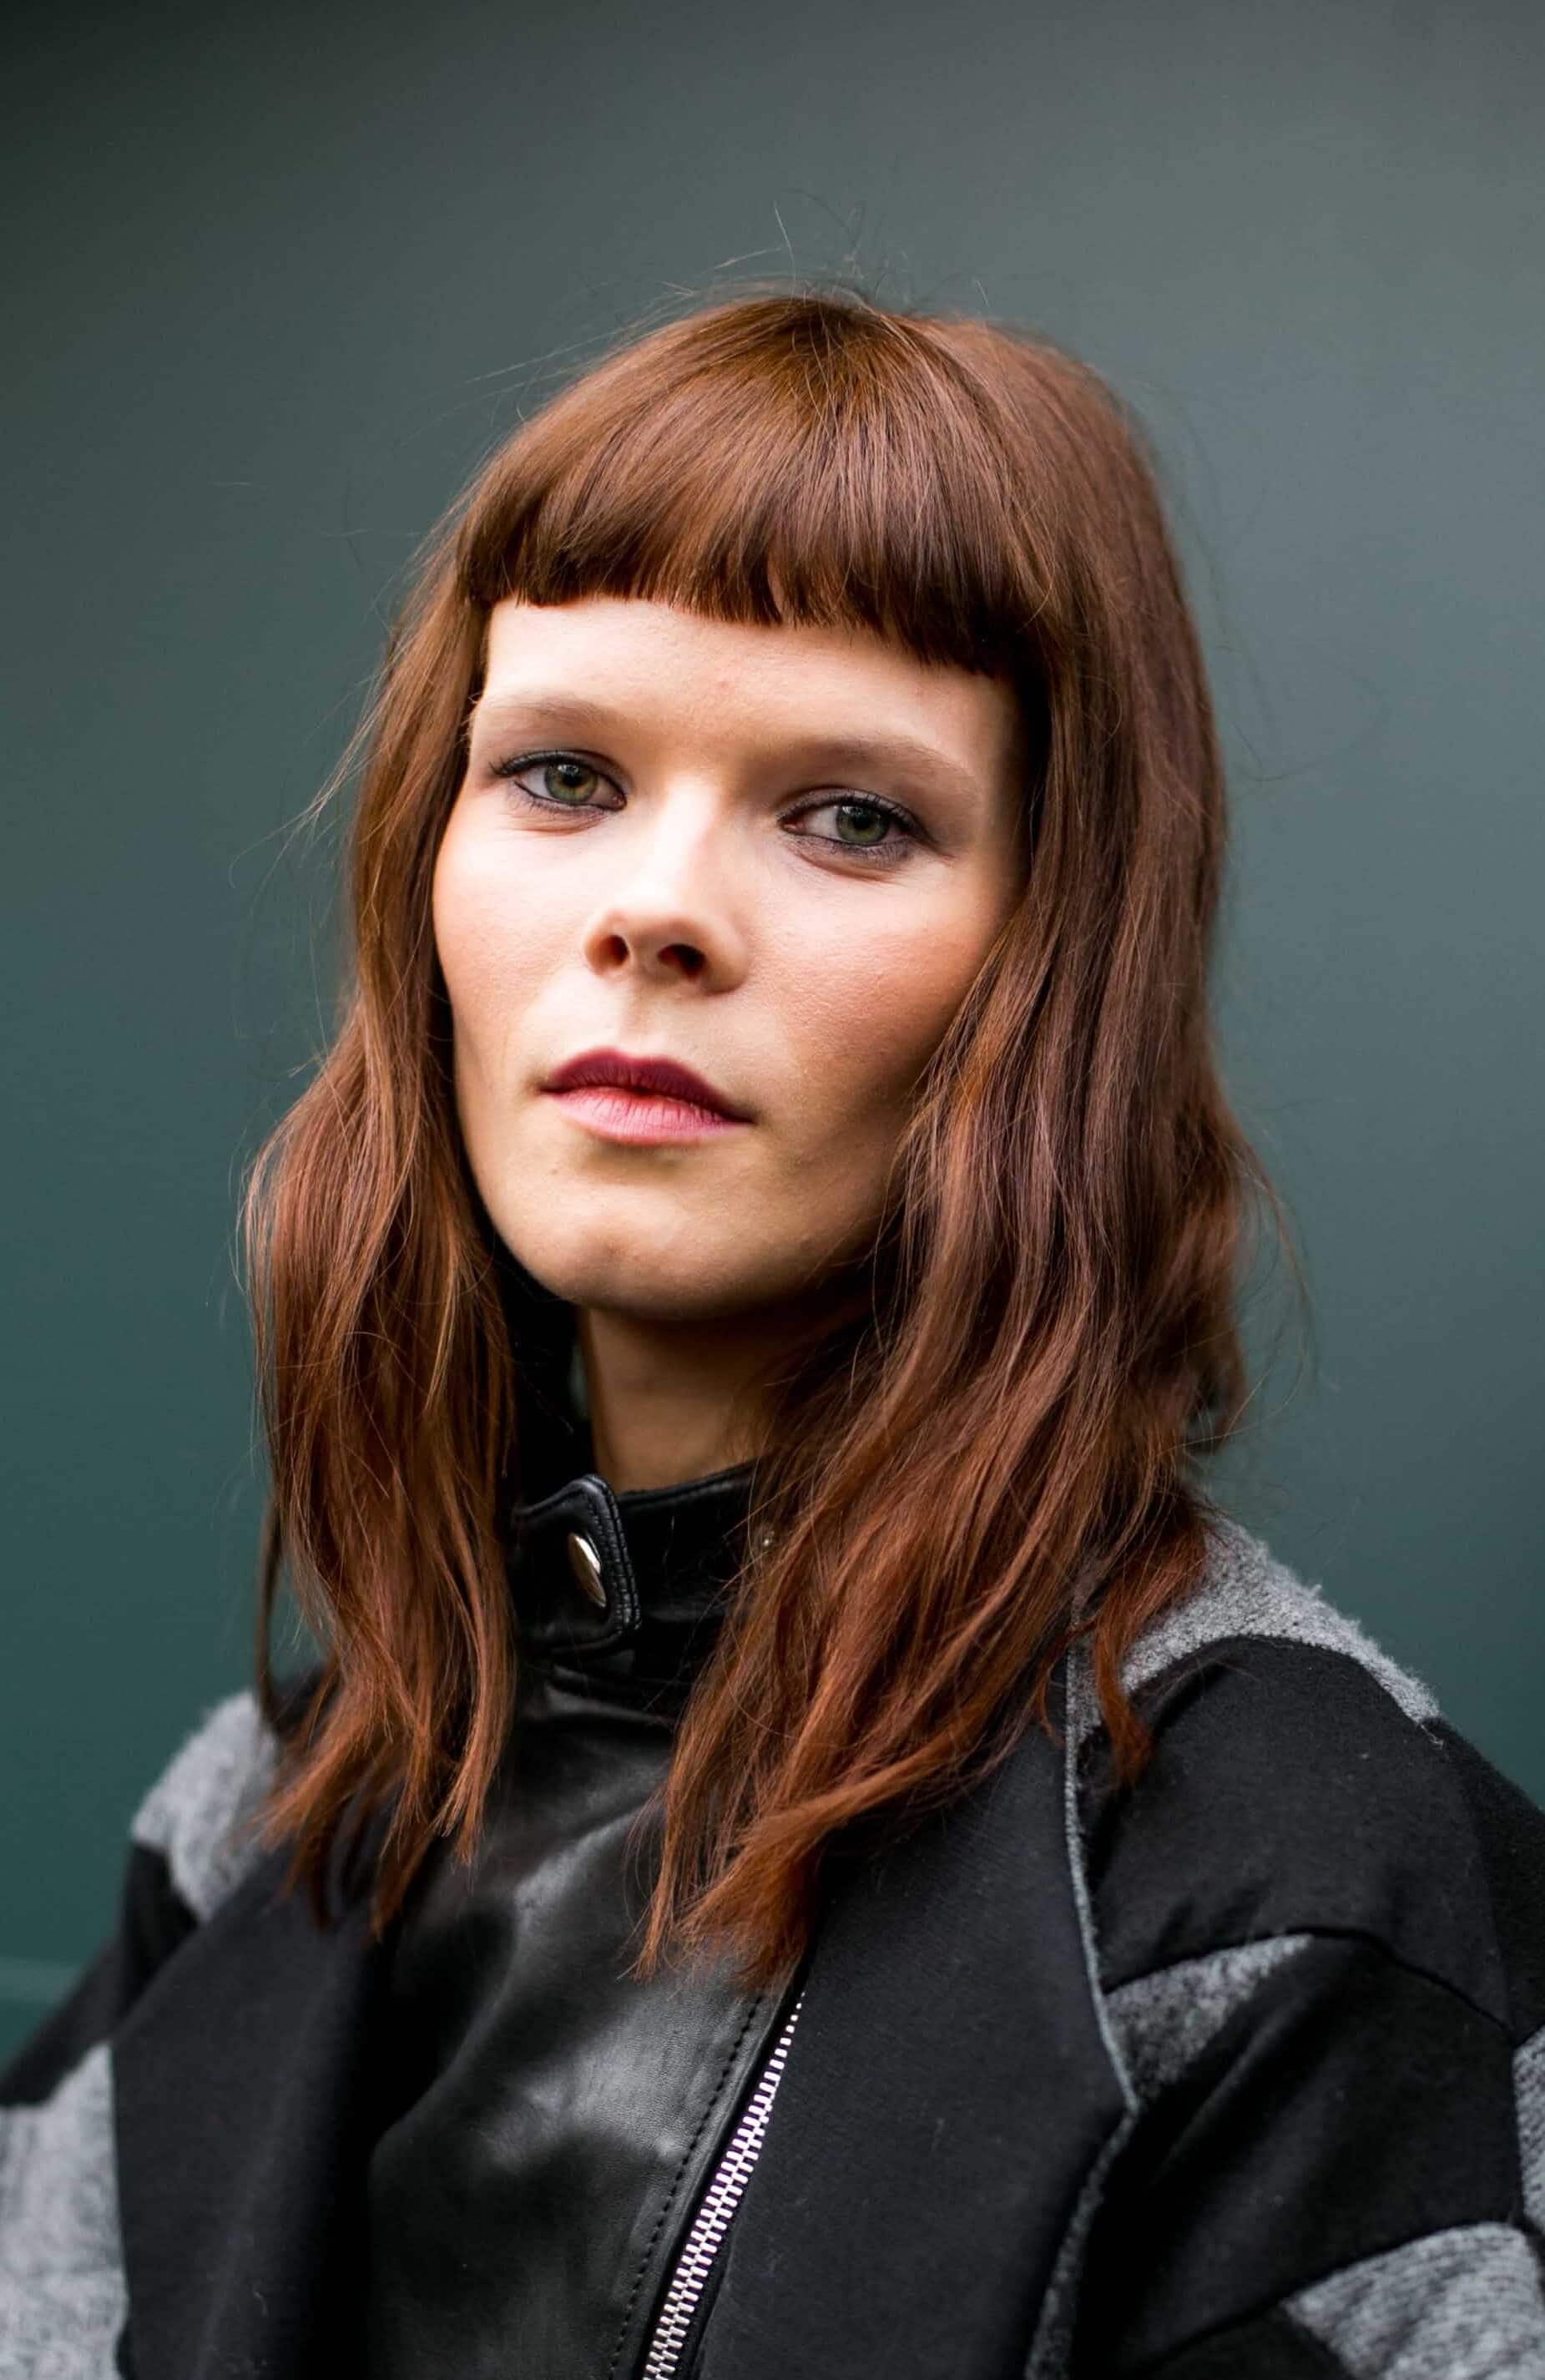 model with copper brown tousled wavy medium-length hair wirth micro fringe